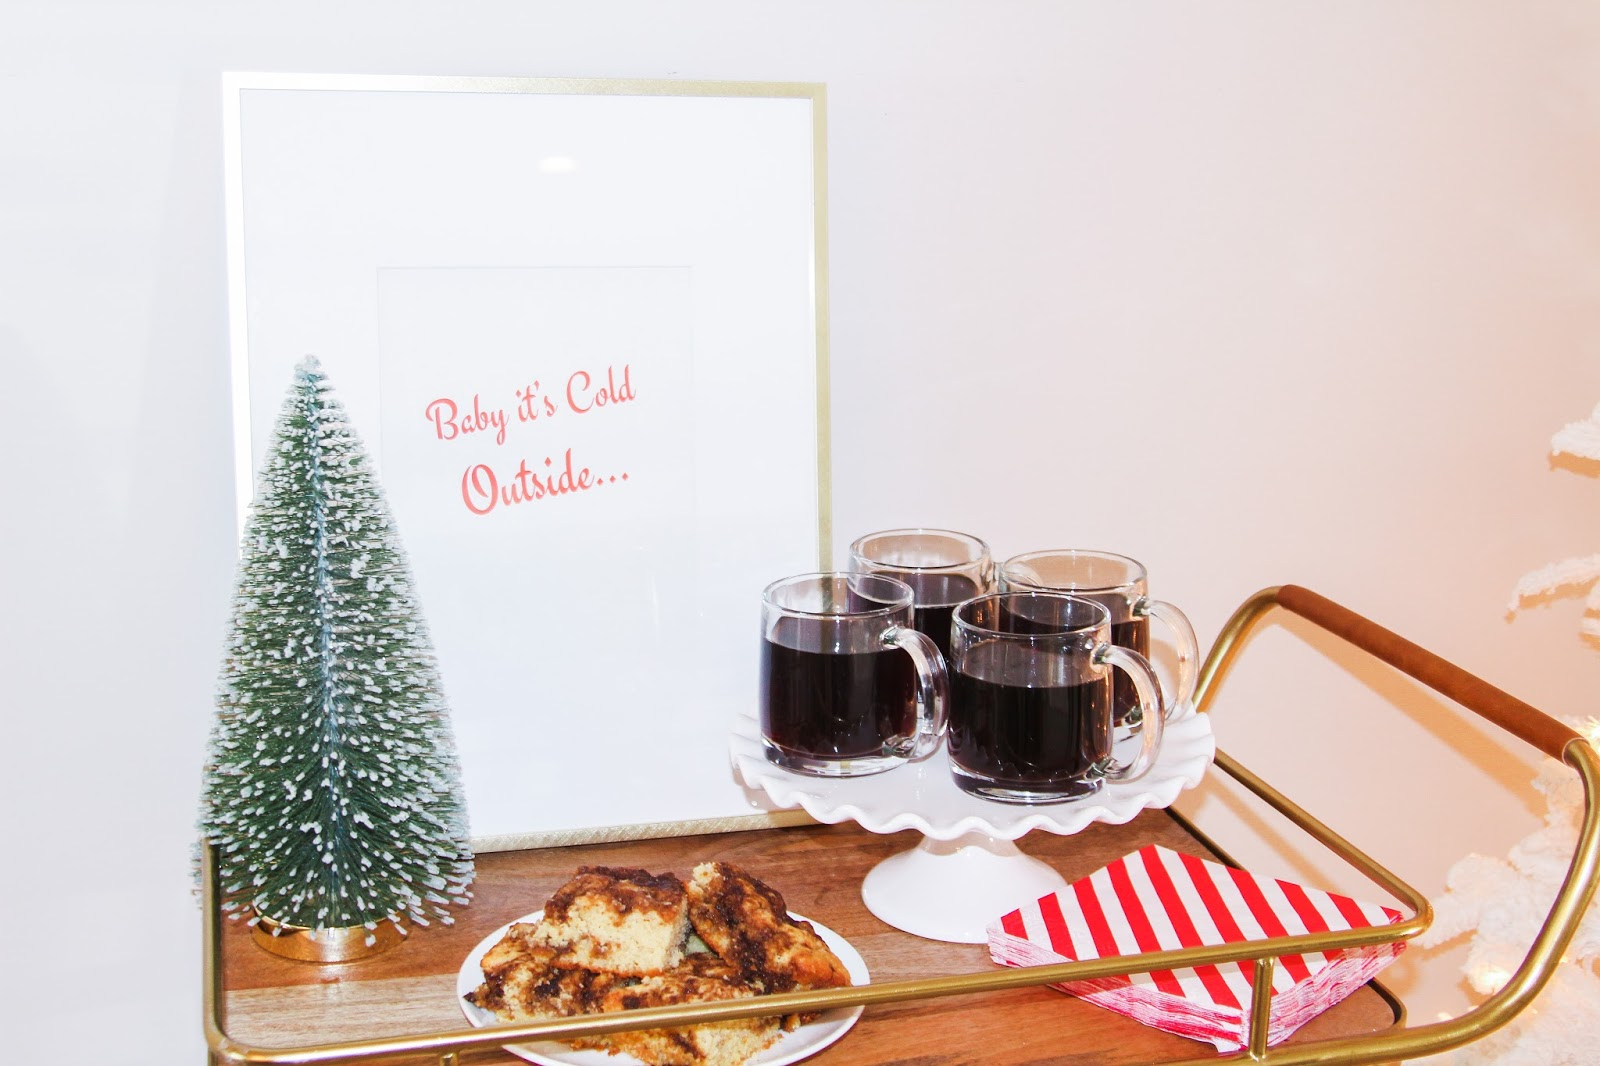 Christmas Coffee Cart Ideas  by popular party blogger The Celebration Stylist